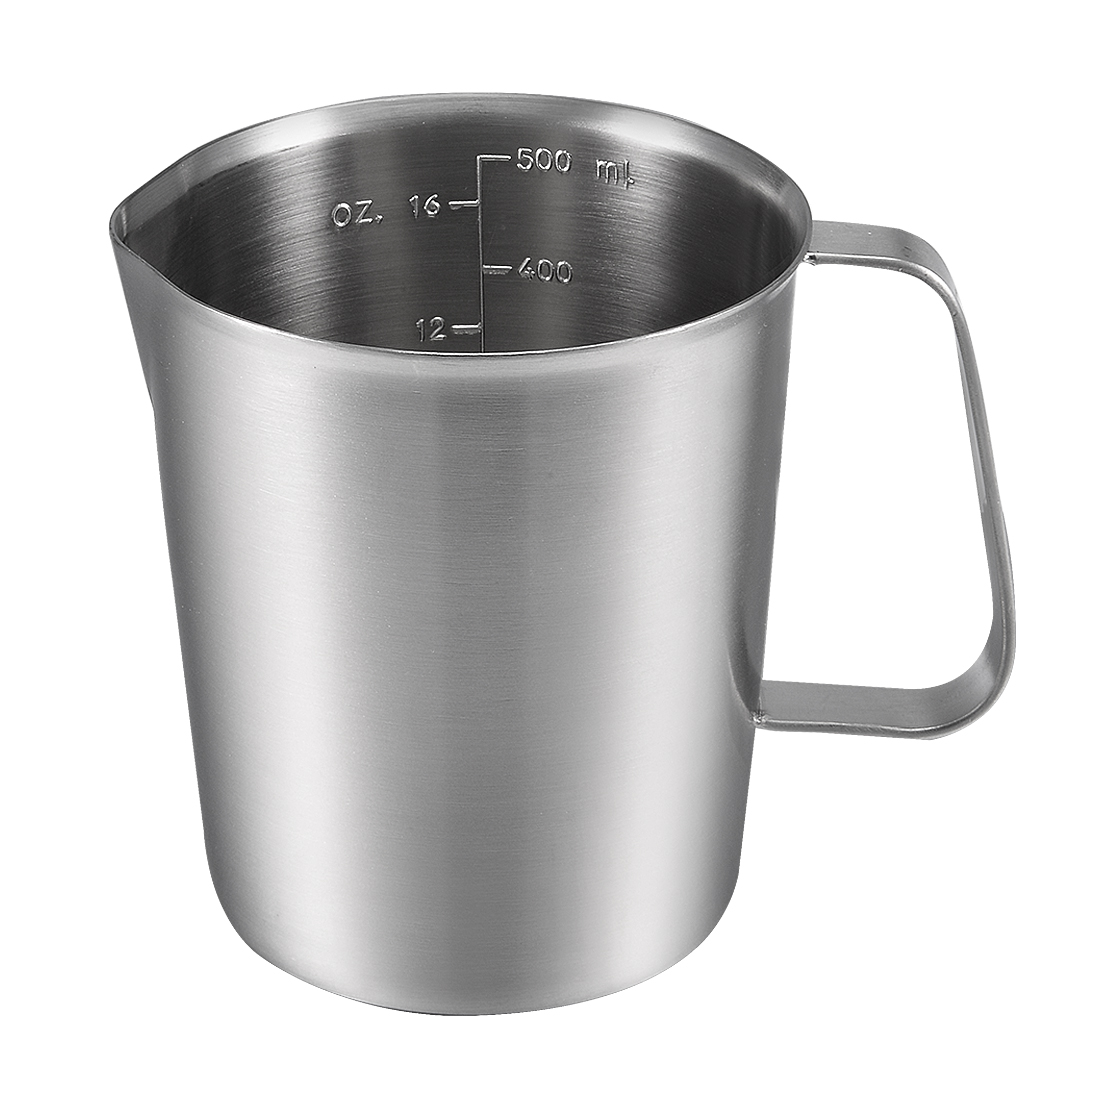 Measuring Cup with Marking with Handle, 16 Ounces, 500mL